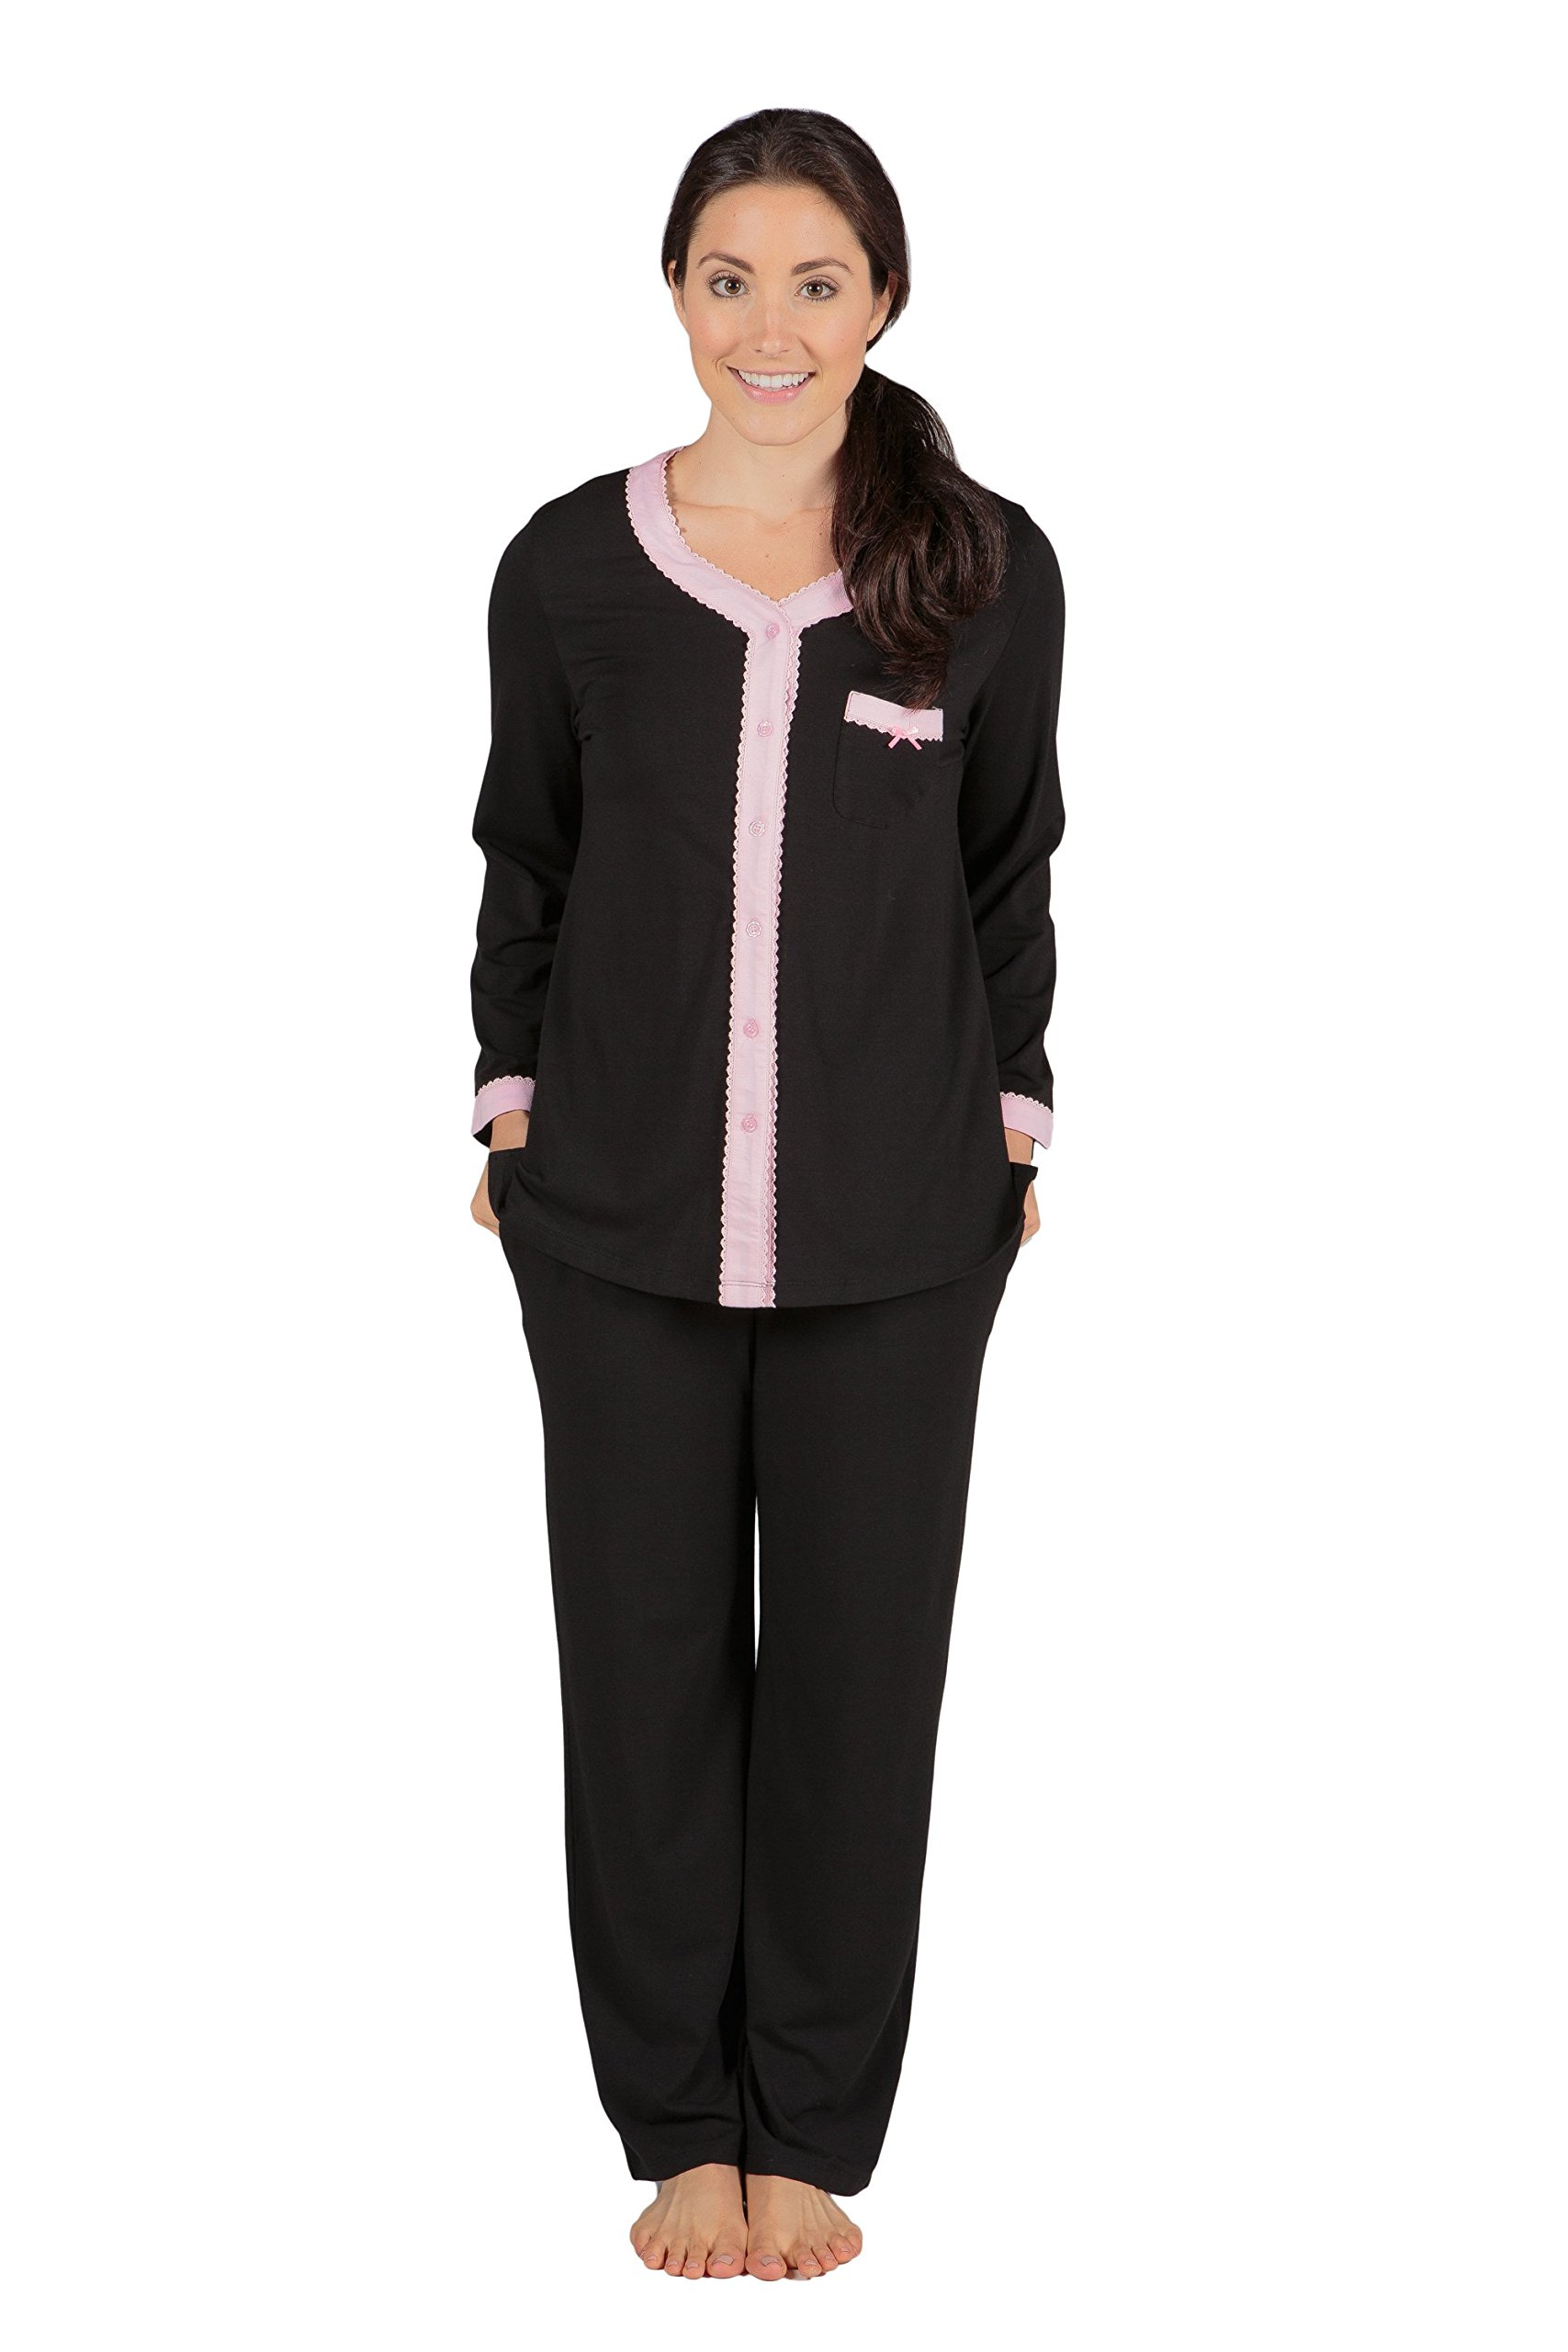 Women's Long Sleeve Pajama Set - Button Up Sleepwear by Texere (Eco Nirvana)